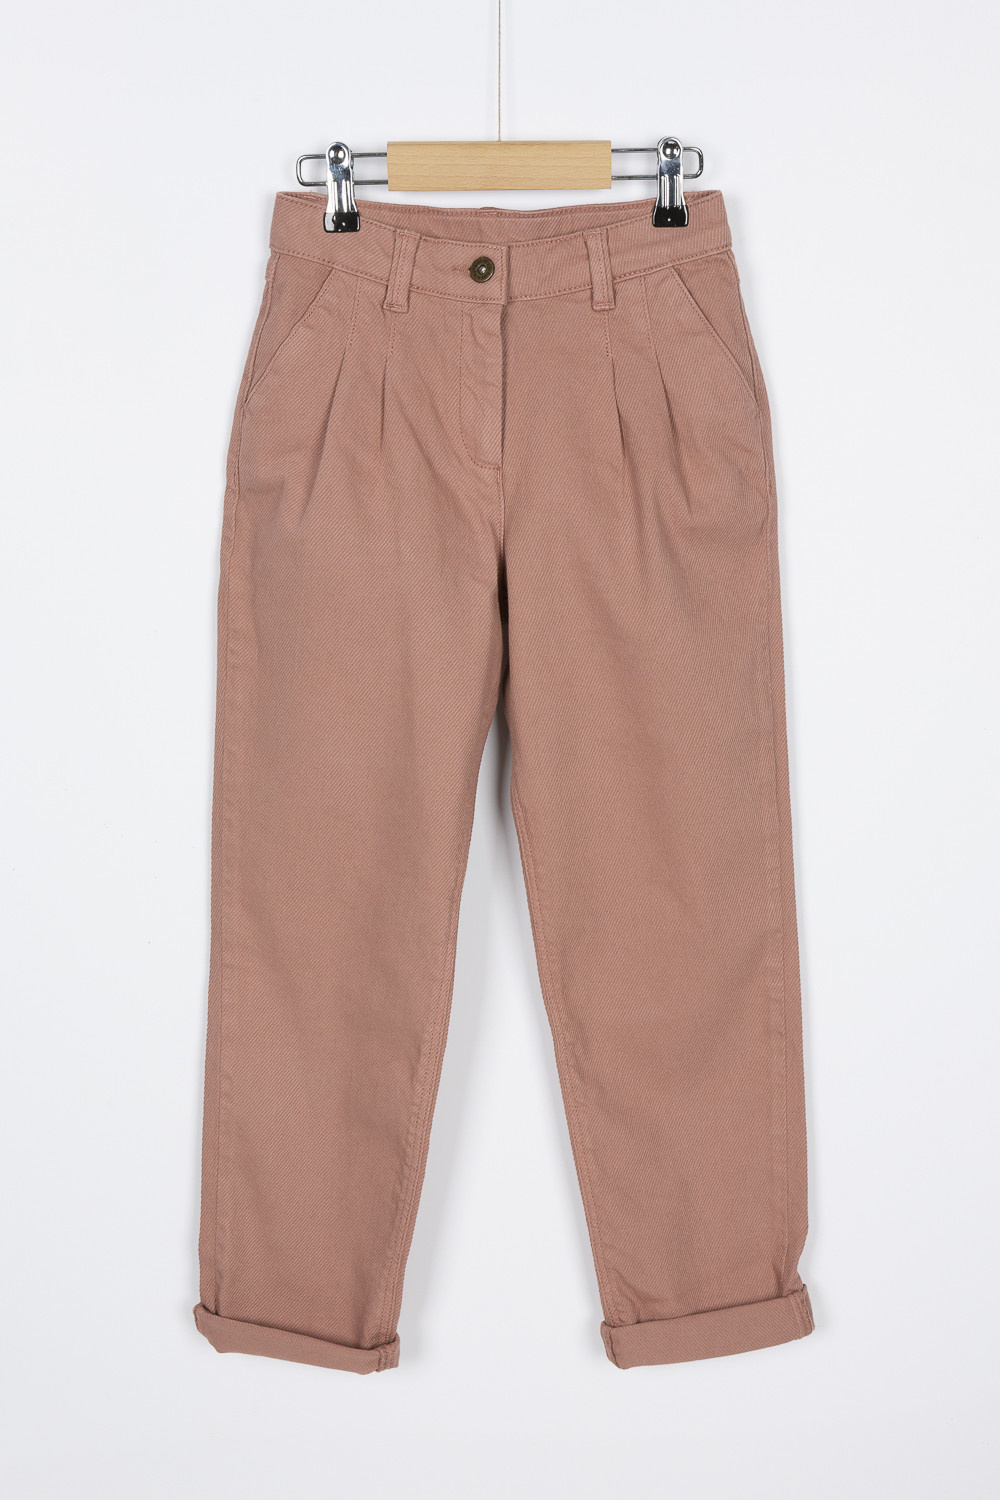 By-Bar Bybar - Embrace Pant